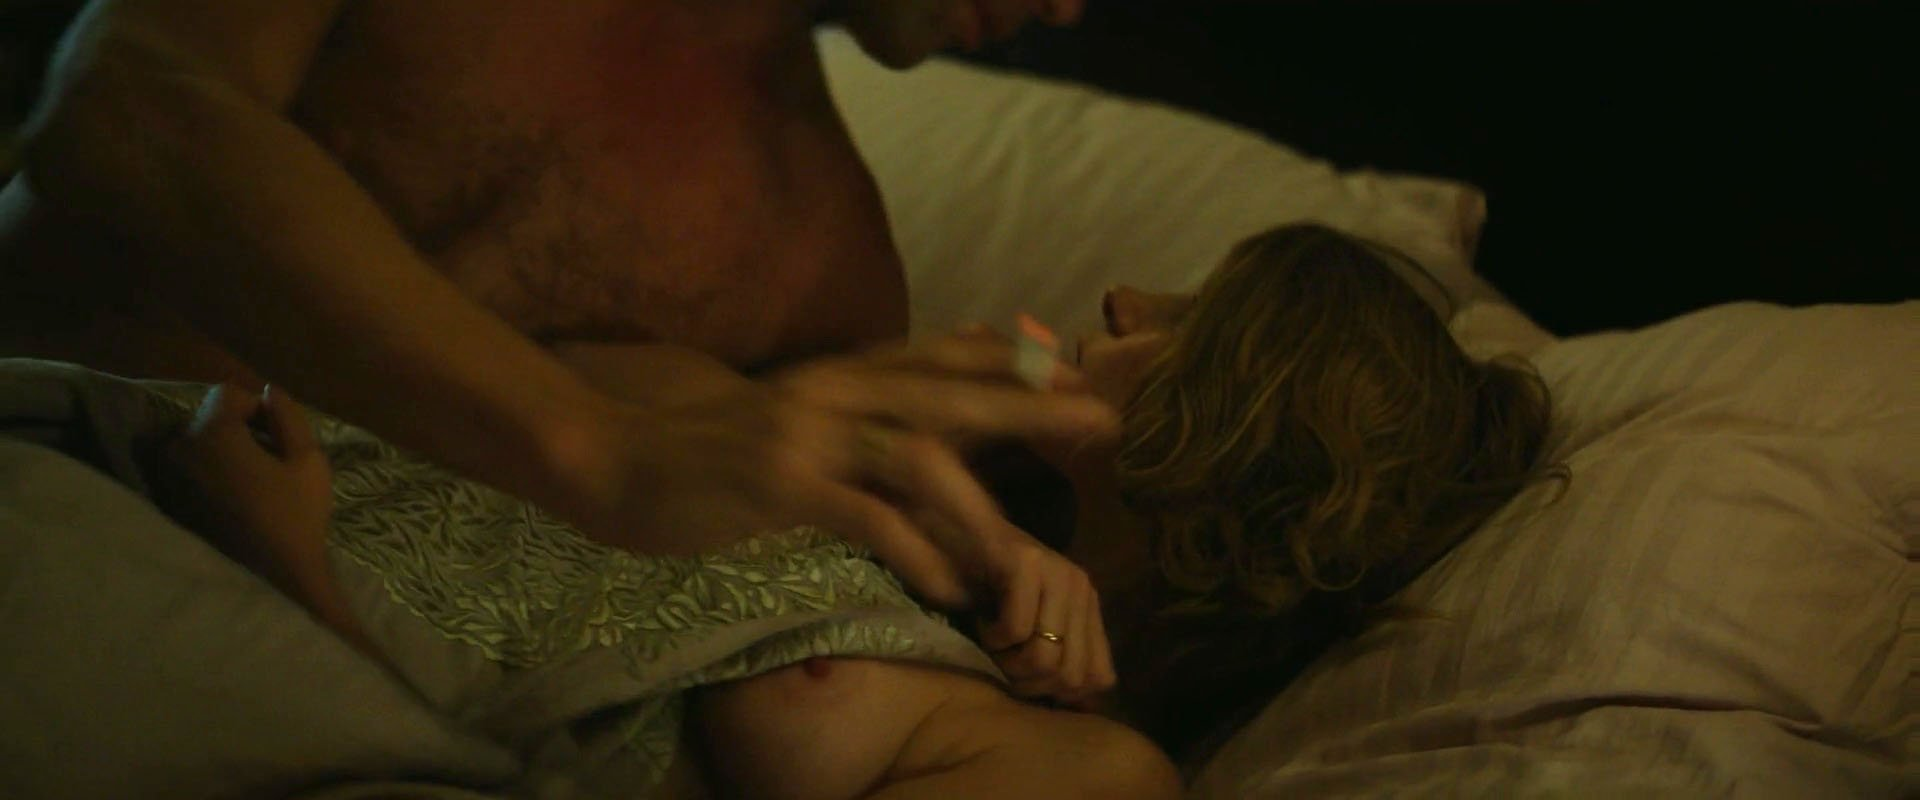 Nude Video Celebs  Jessica Chastain Nude - The Zookeeper -6244